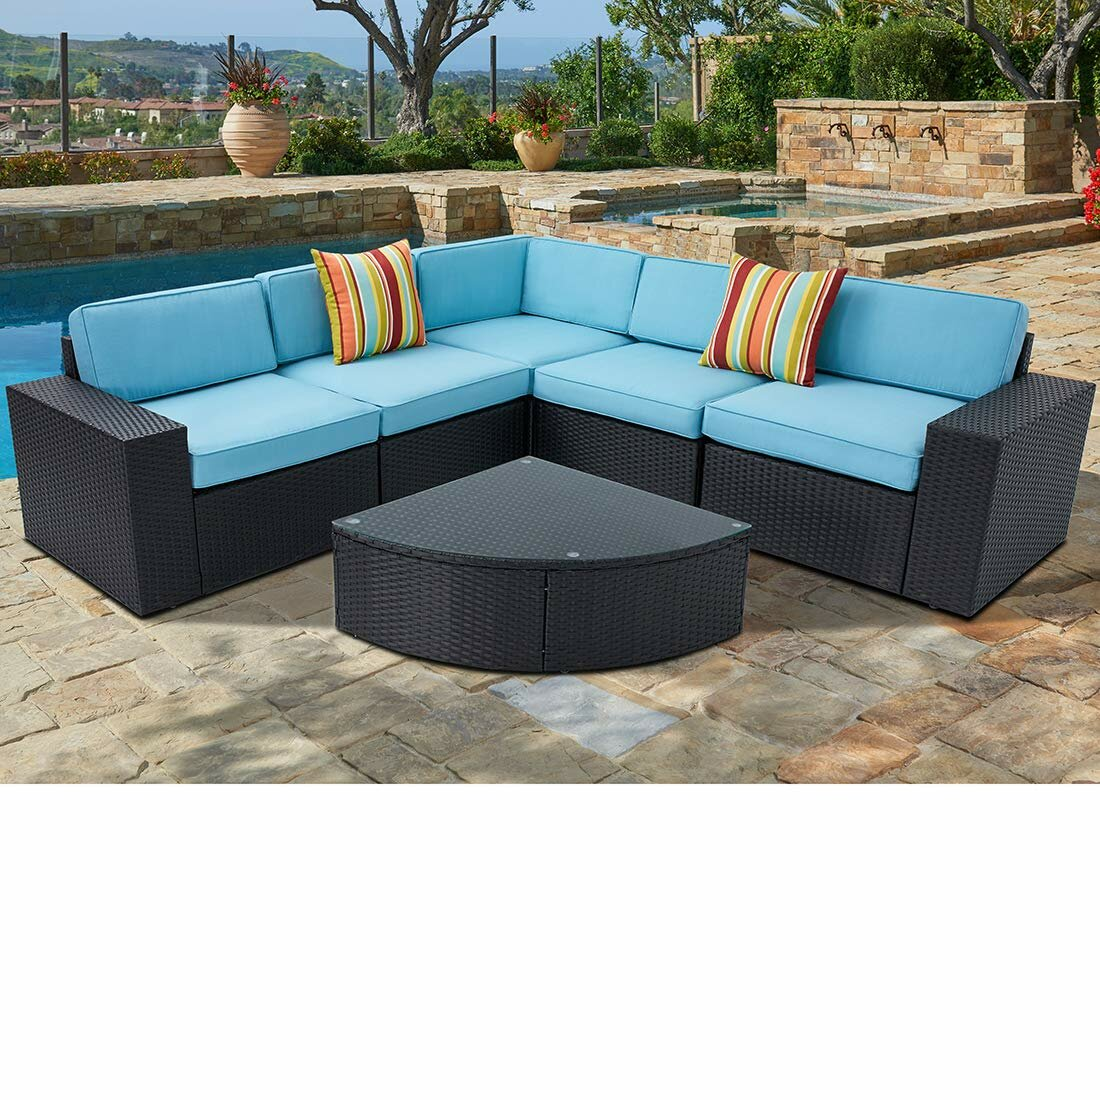 Terrific Rone Outdoor 6 Piece Black Wicker Sectional Sofa Wedge Table Set Spiritservingveterans Wood Chair Design Ideas Spiritservingveteransorg